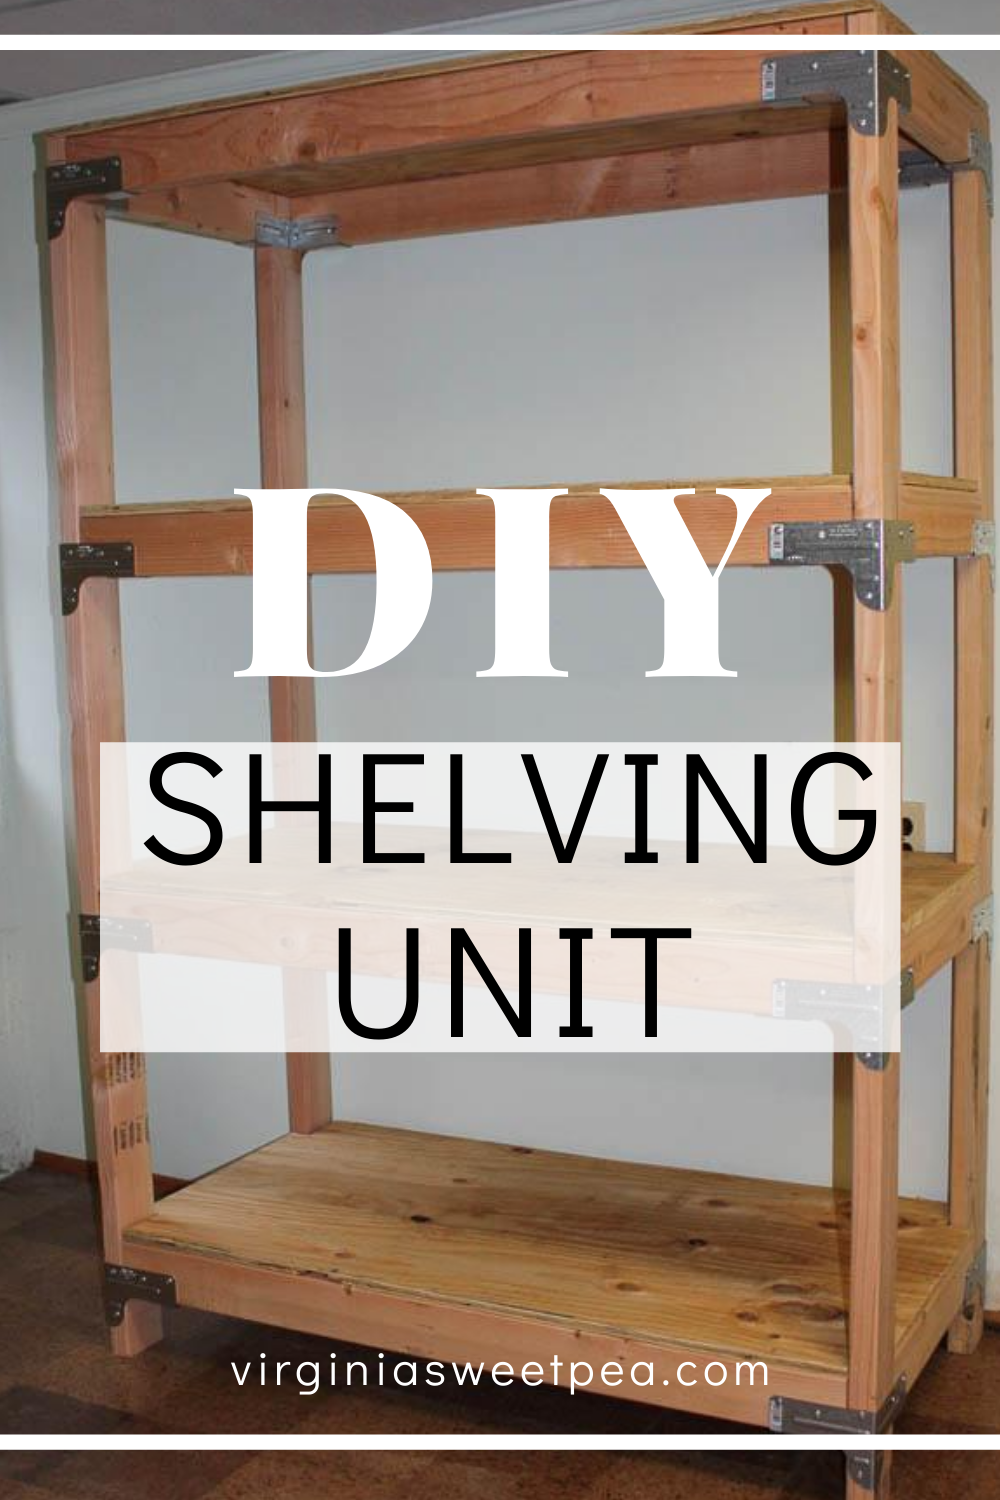 DIY 2x4 Shelving Unit - Learn how to make a super handy shelving unit with plyboard and 2x4 lumber.  This is great for a garage, basement, or shed.  #2x4project #diyshelves #diyshelvingunit via @spaula